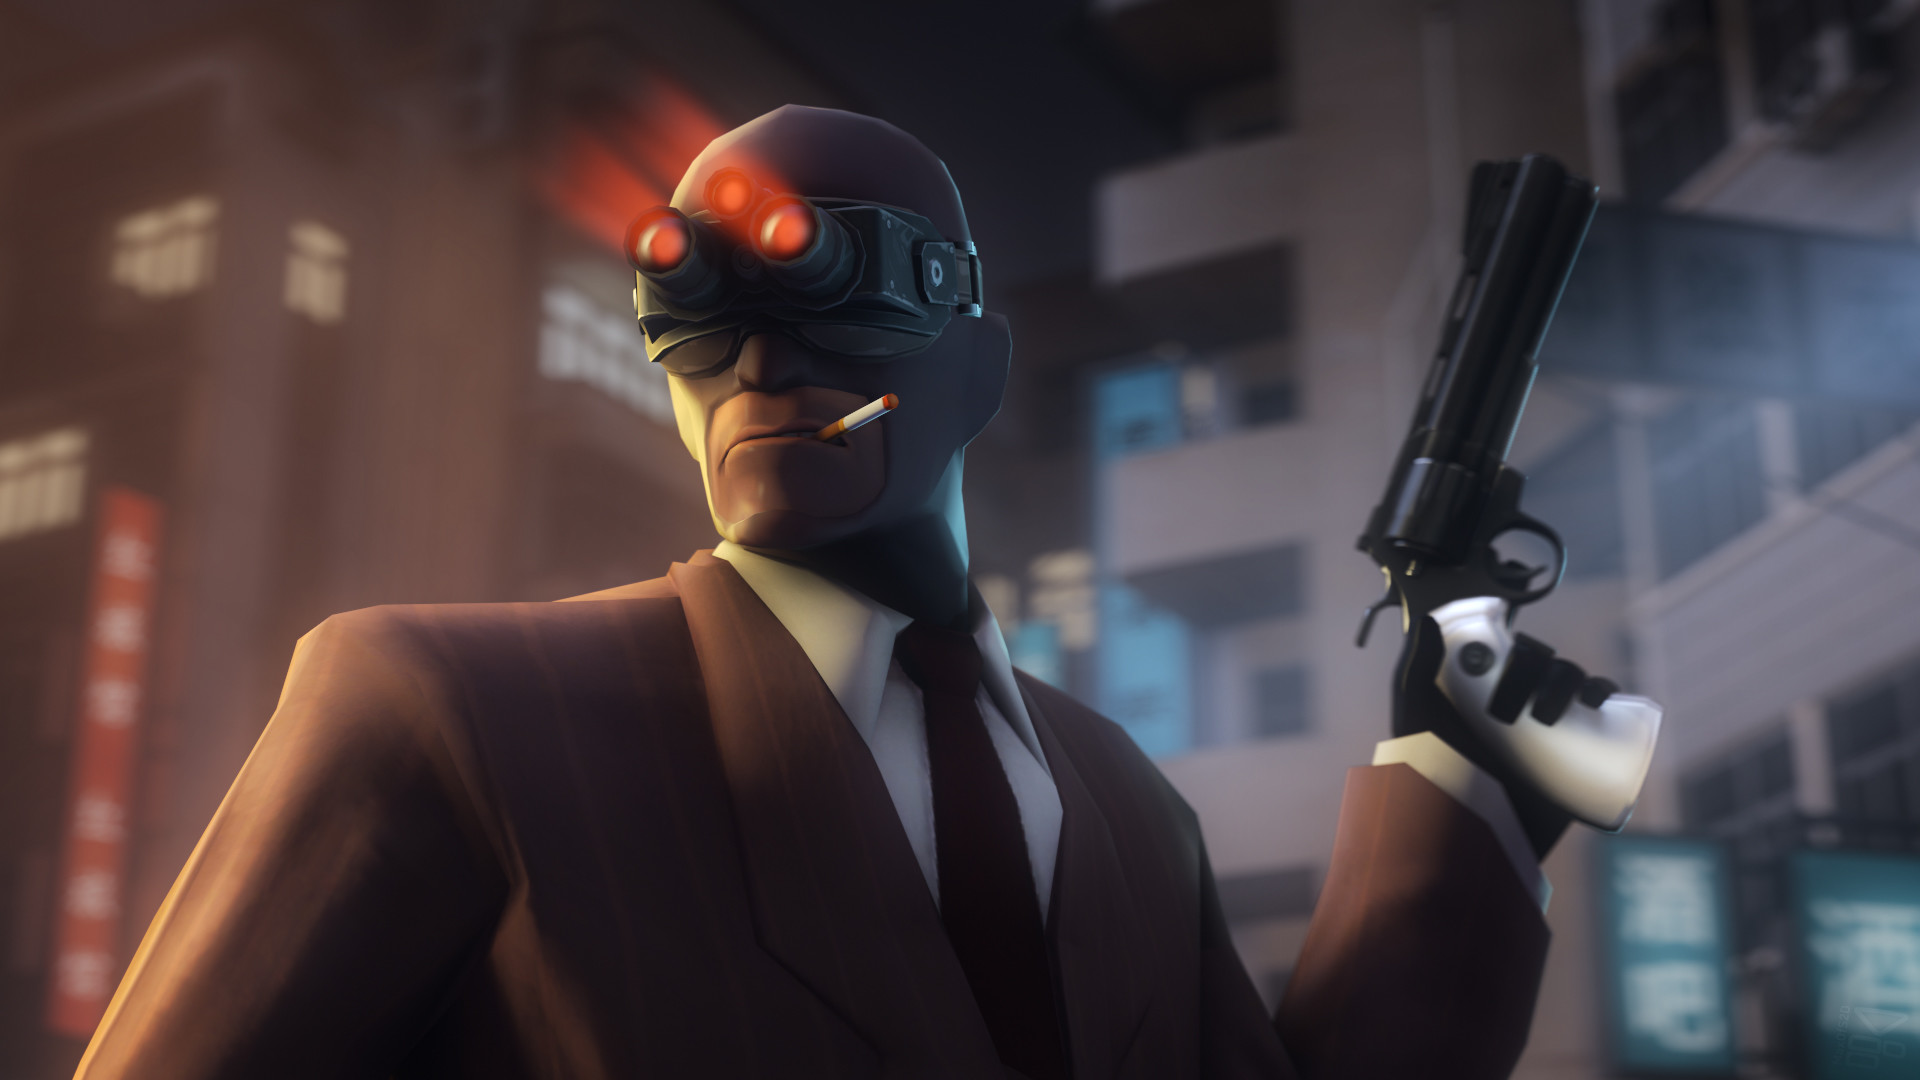 Res: 1920x1080, MaxOfS2D's Tumblr — Promo shot I made for this workshop item. TF2 .